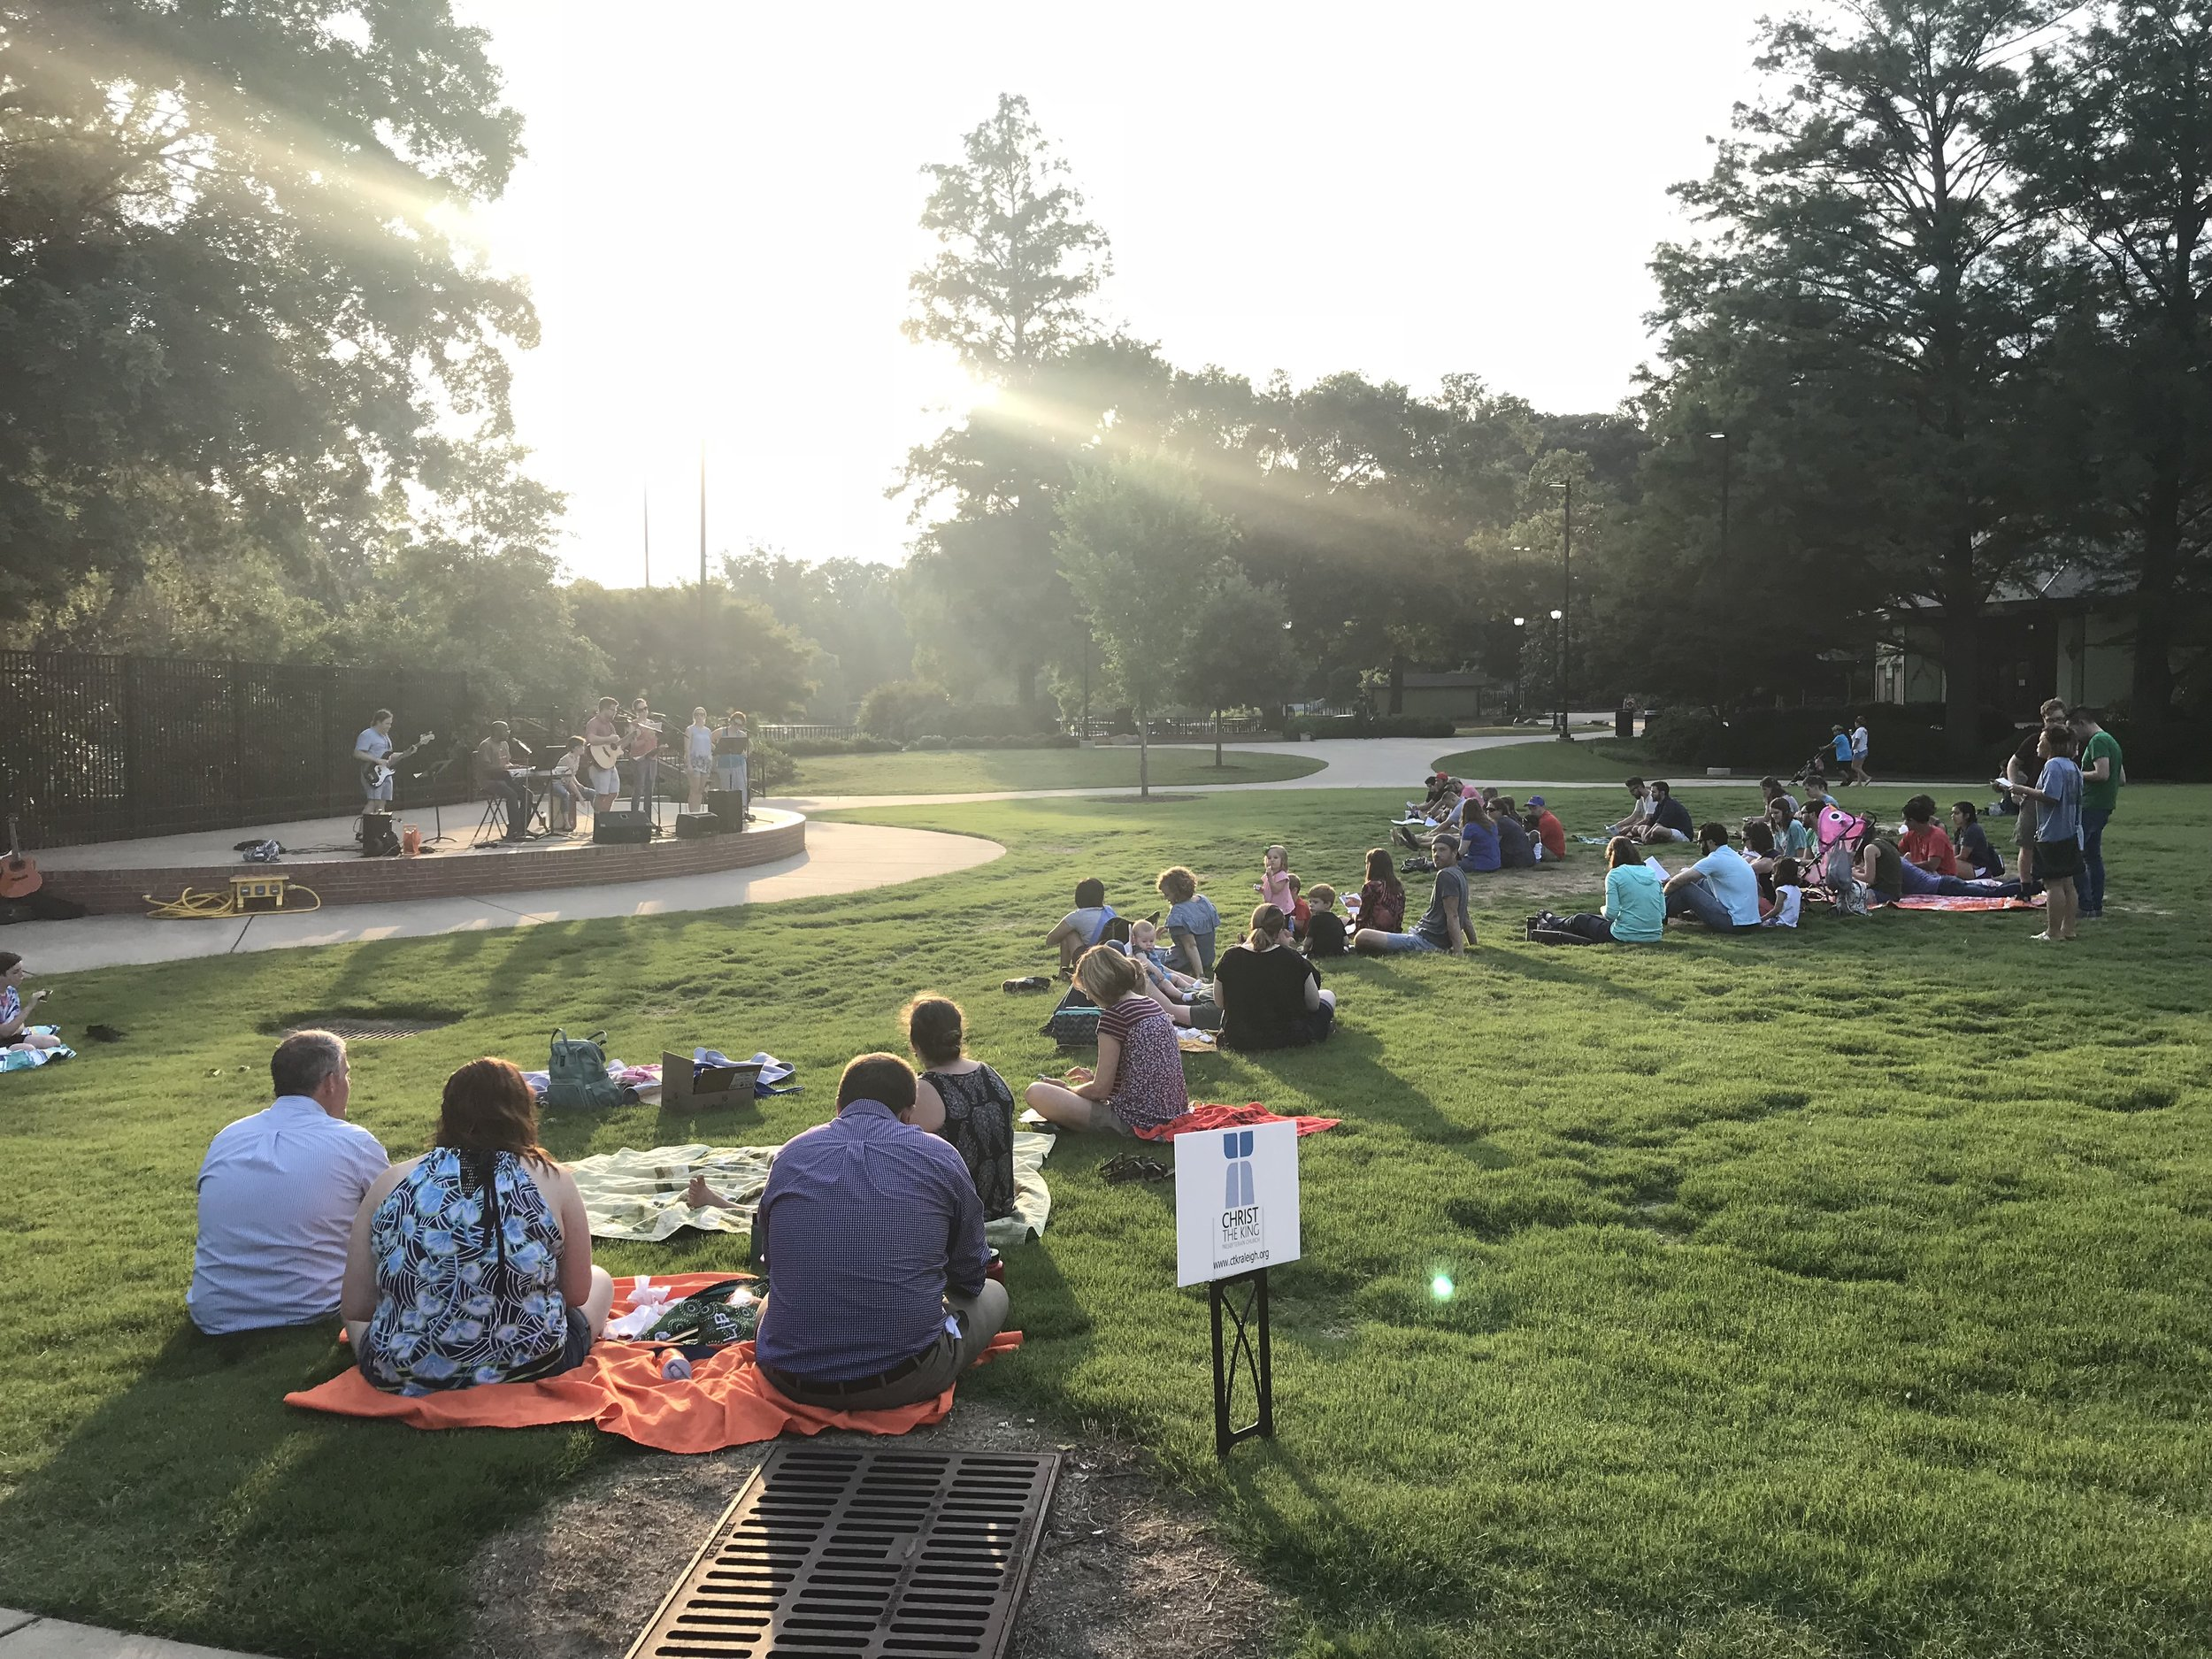 Worship in the Park - June 26 and August 21 | 6-8pmJoin us for two Worship Nights at Pullen Park this summer. We'll gather together at 6pm for dinner and pre-worship fellowship, then we will have a time of worship together at the Event Stage beginning at 6:30pm.